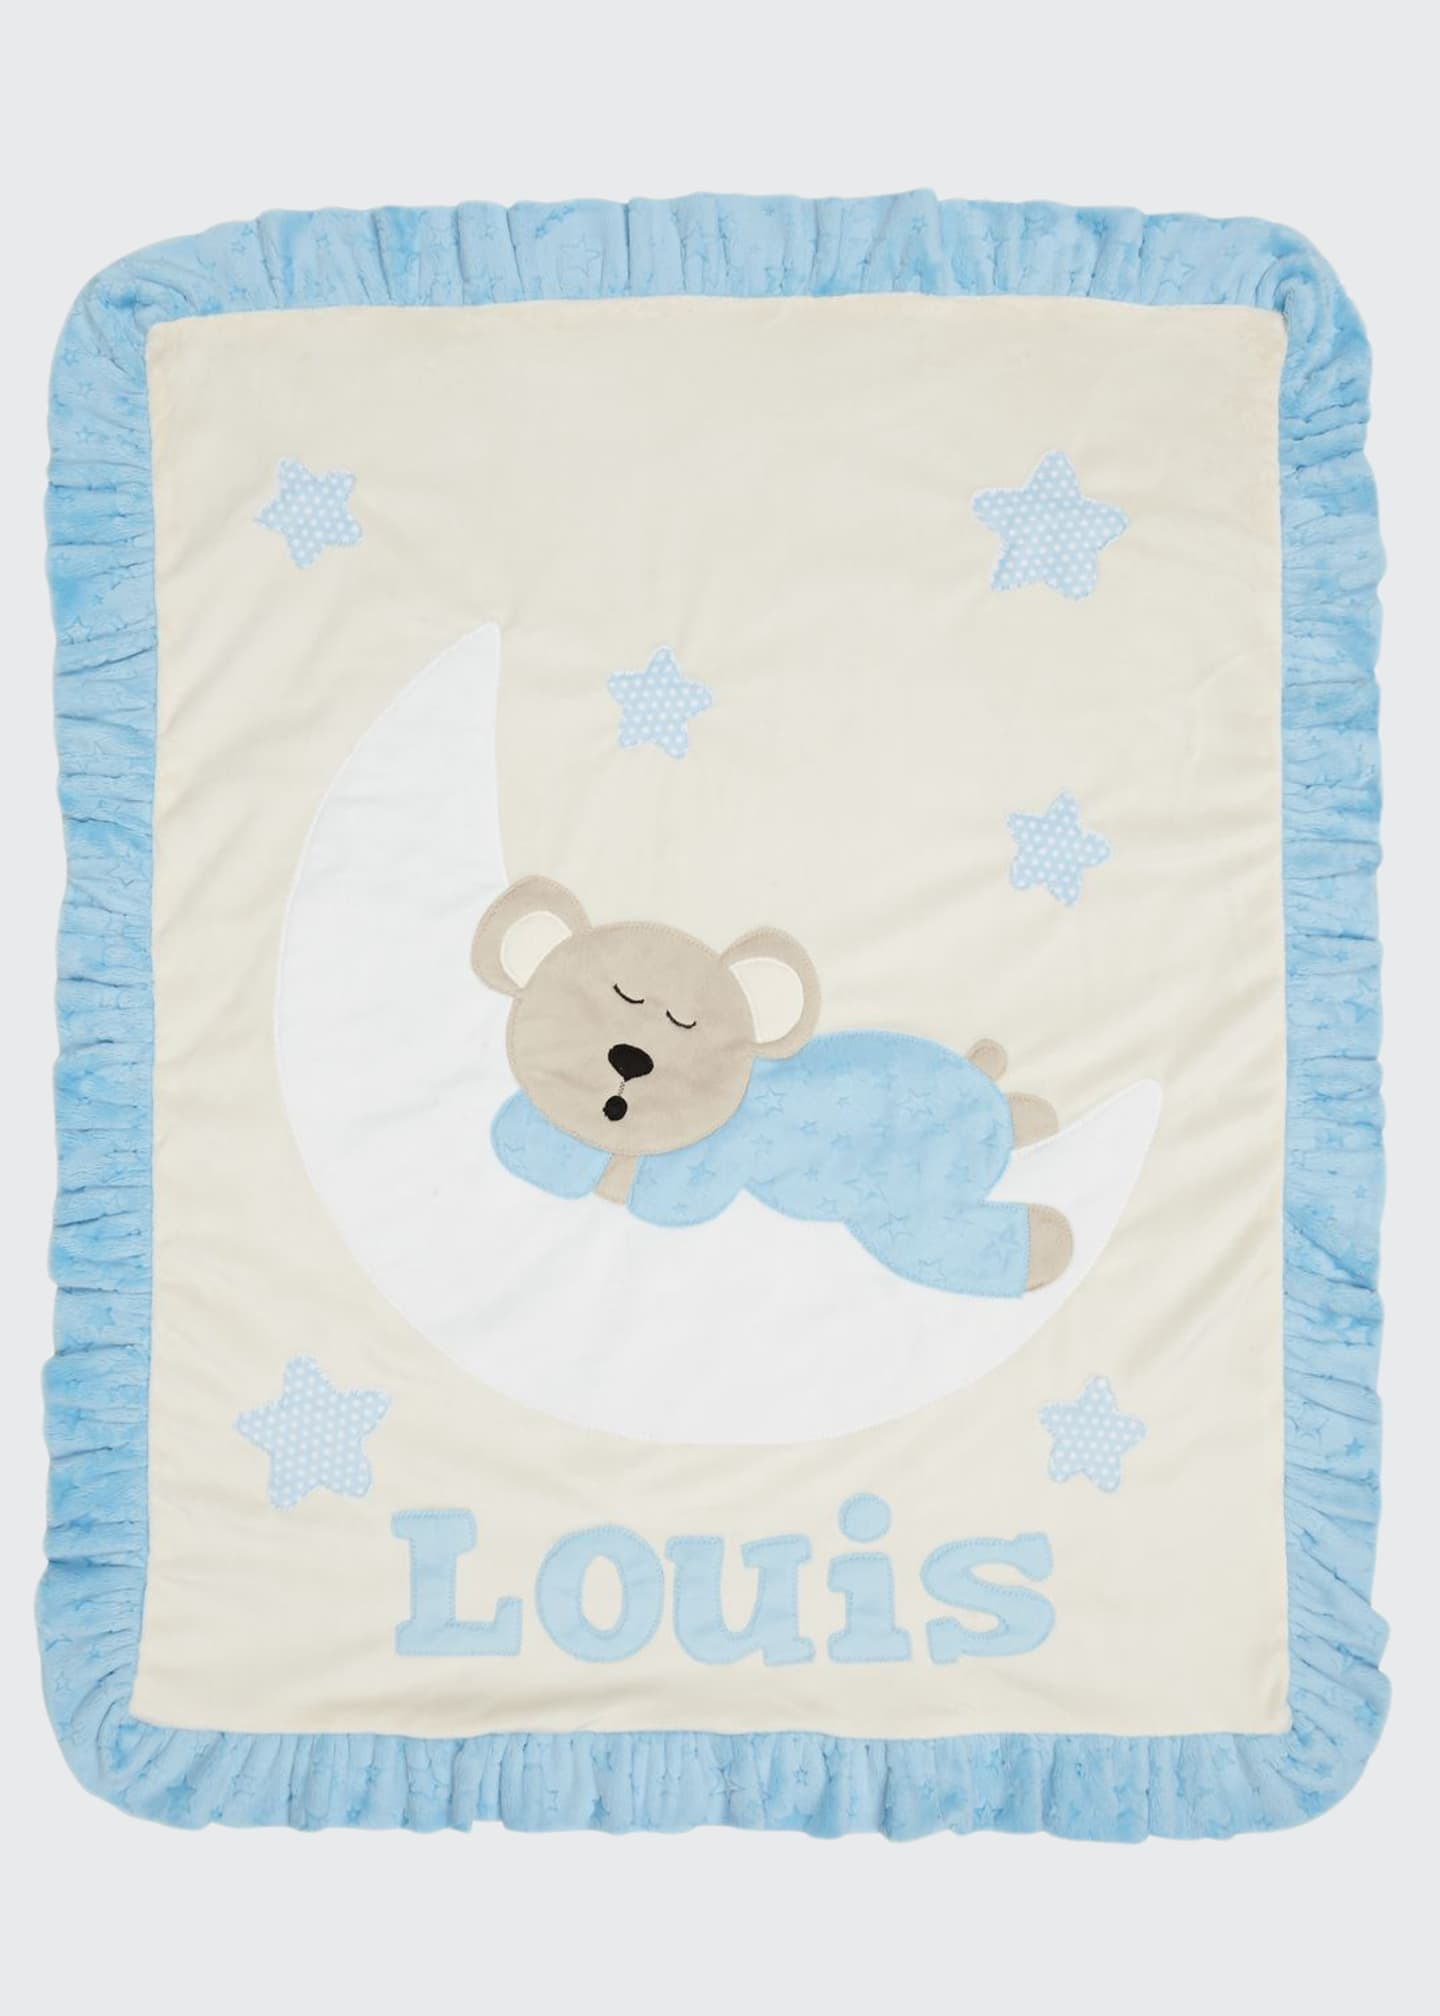 Boogie Baby Personalized Goodnight Teddy Plush Blanket, Blue